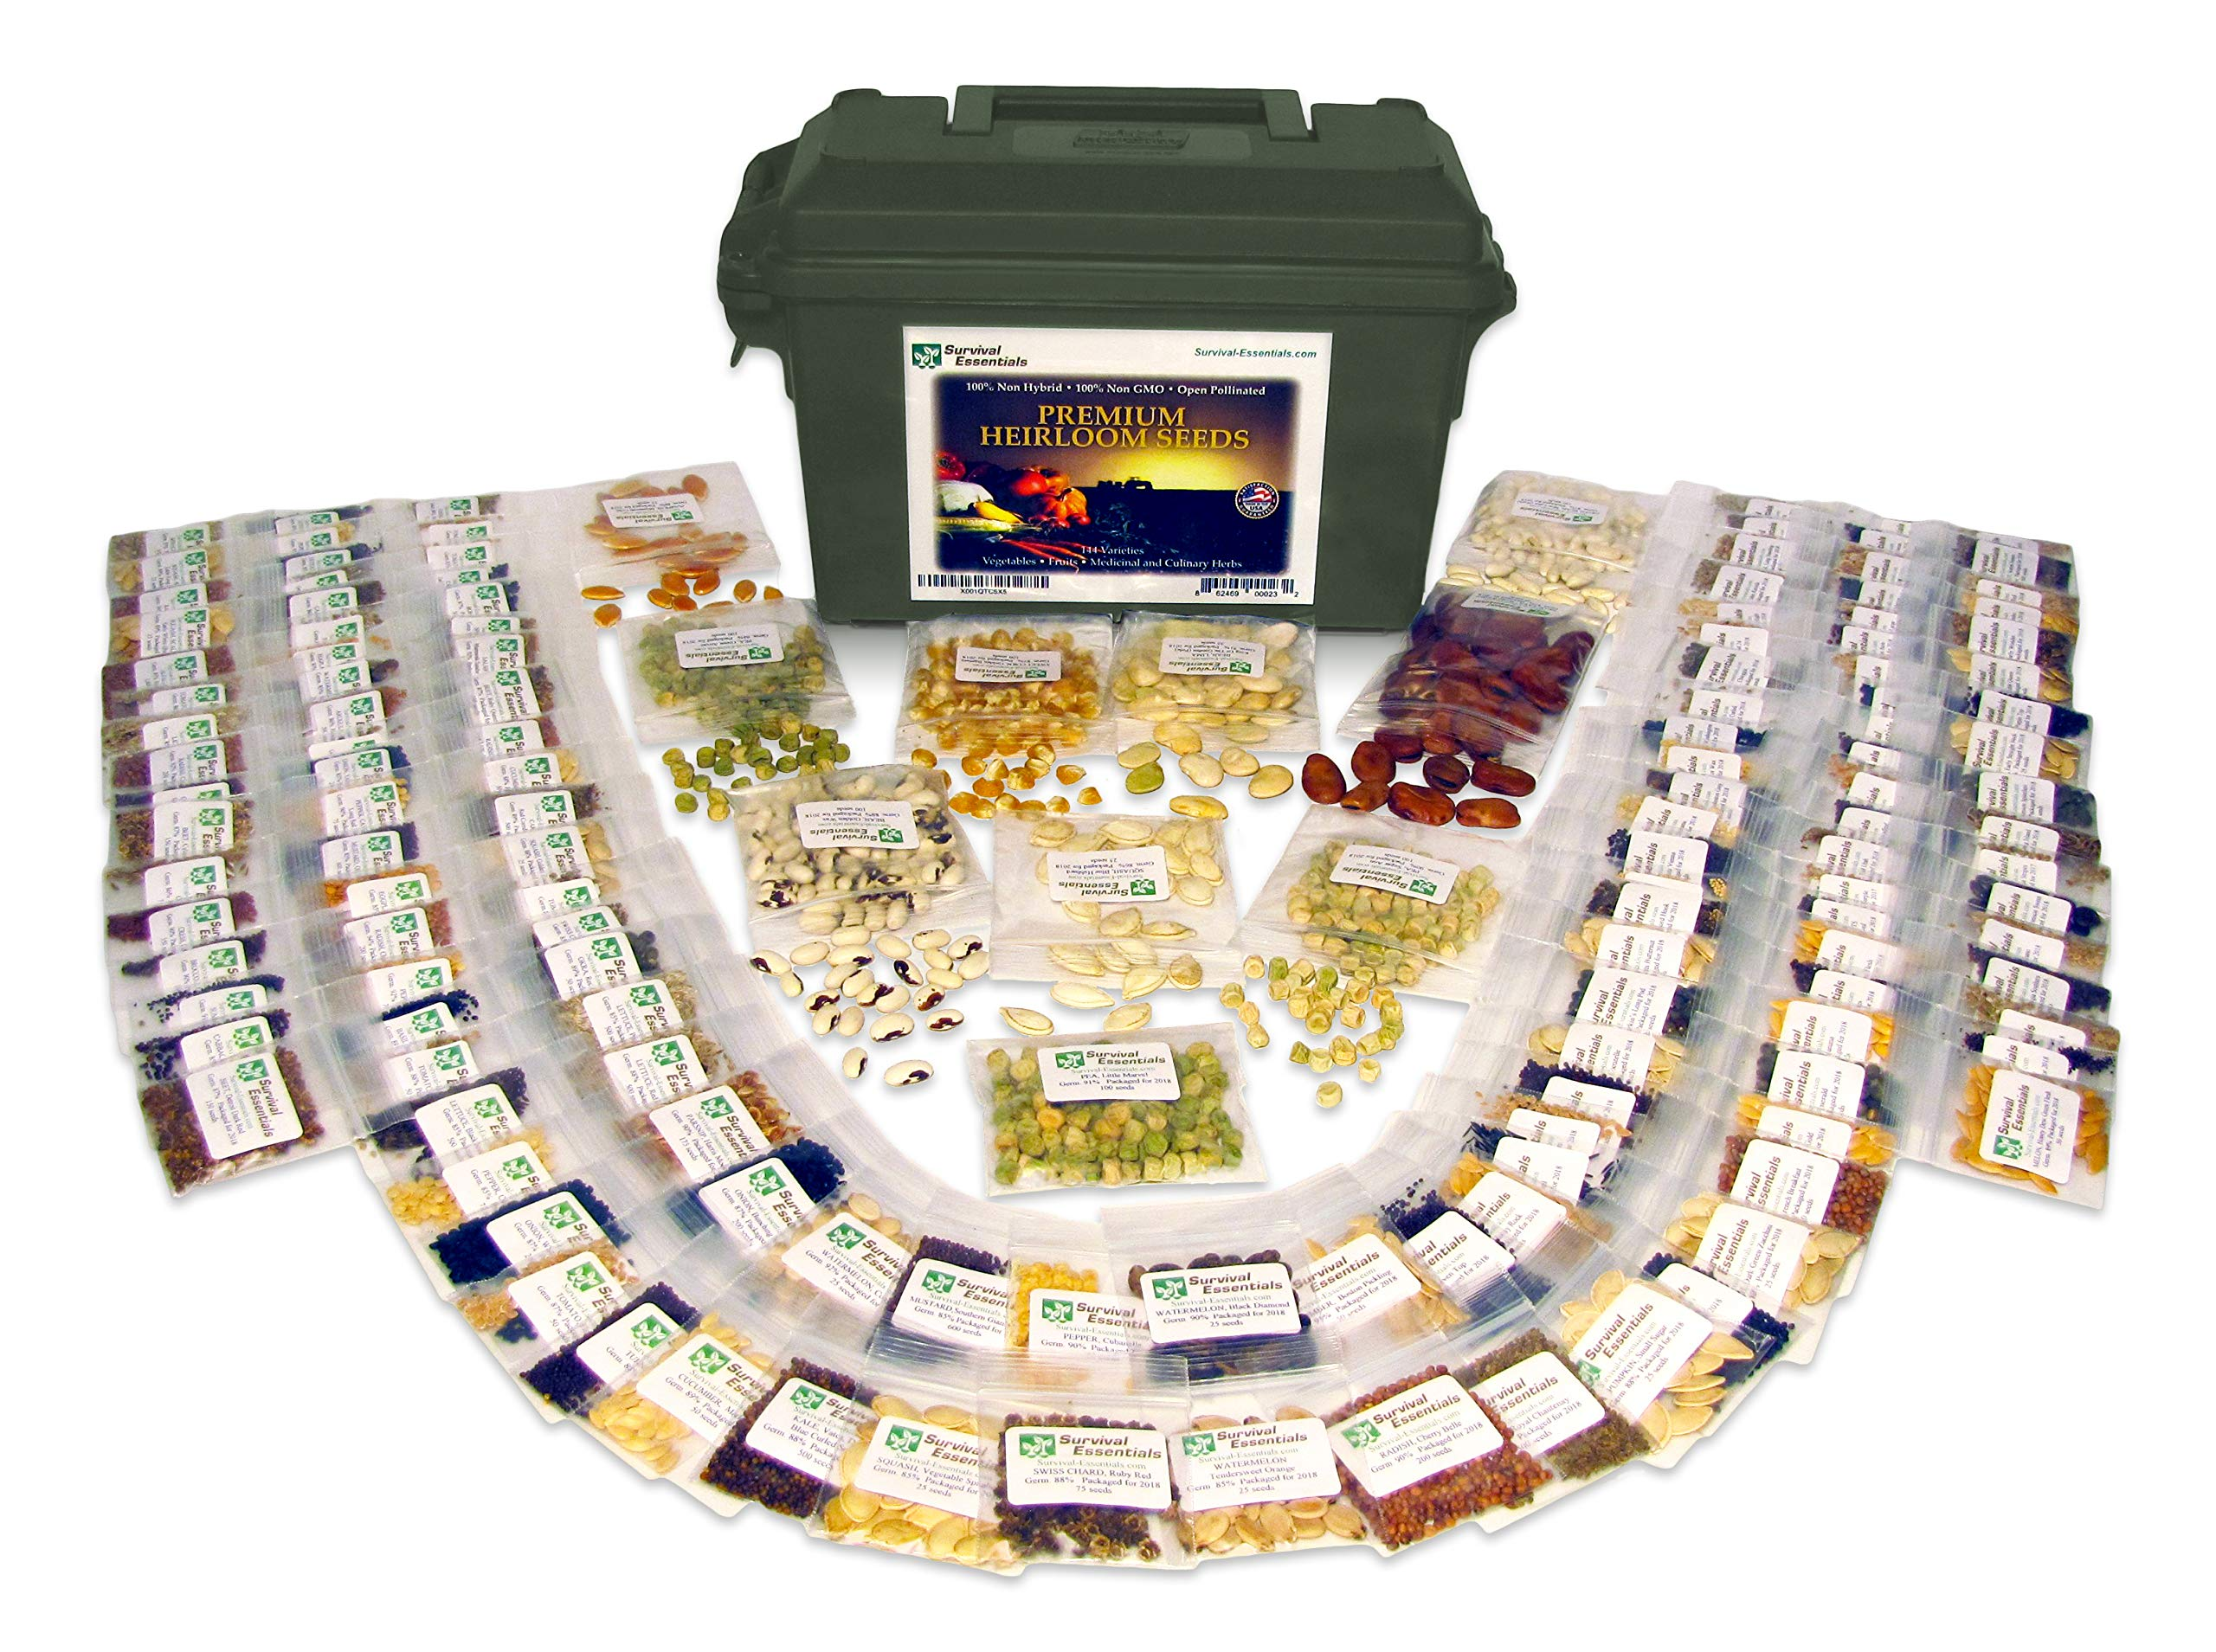 Survival Essentials 144 Variety Ultimate Heirloom Seed Vault for Survival and Preparedness - 23,335+ Non-GMO Heirloom Seeds Packed in Superior Ammo Can for Long-Term Storage and Maximum Shelf Life